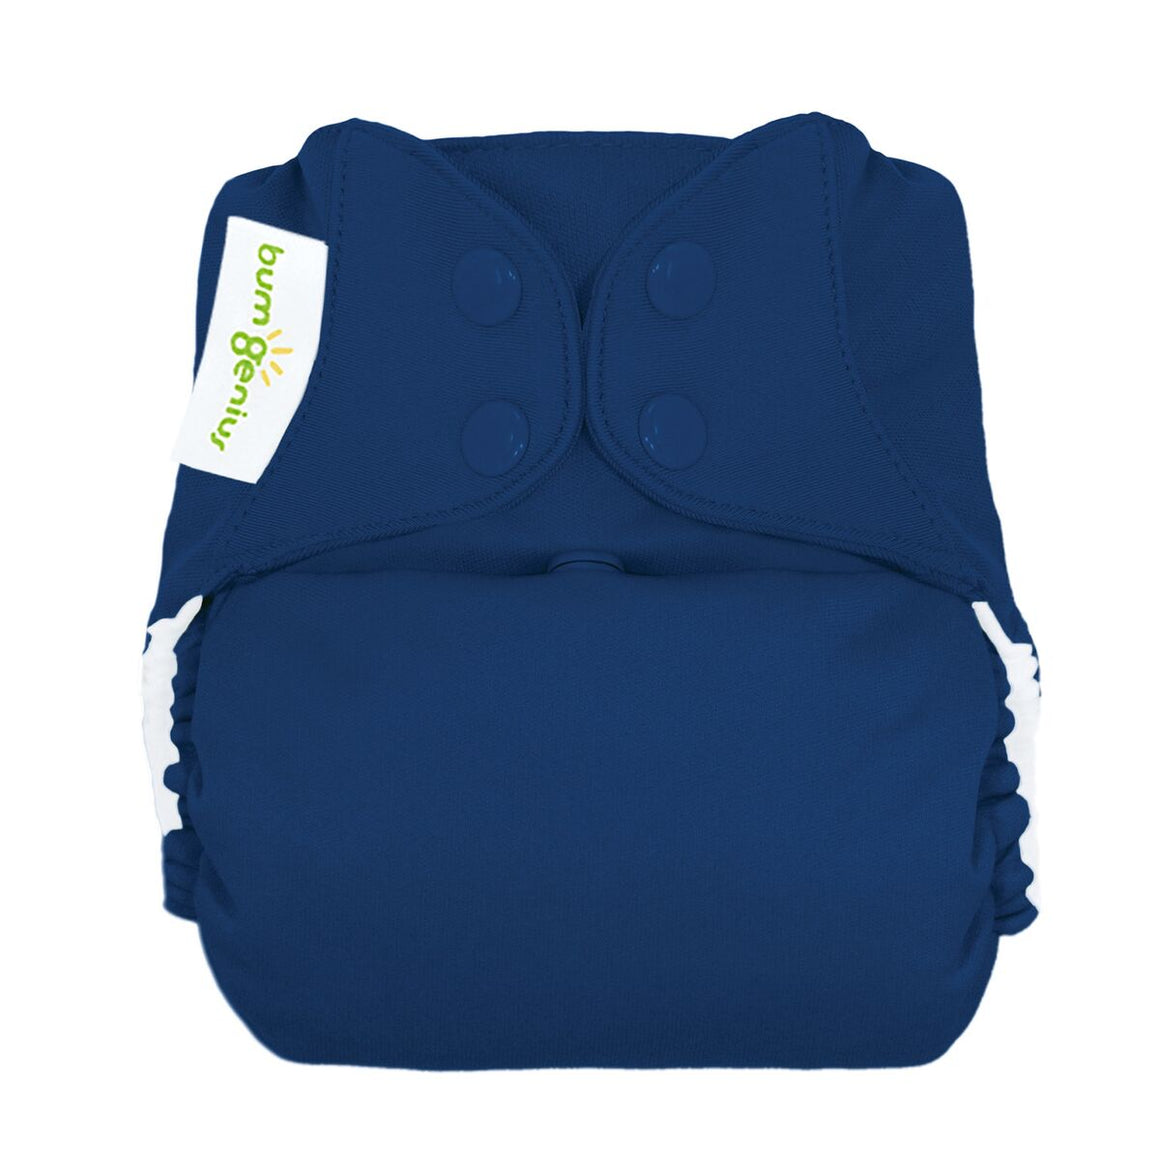 buy gently used bumgenius freetime cloth diapers, used less than 30 days